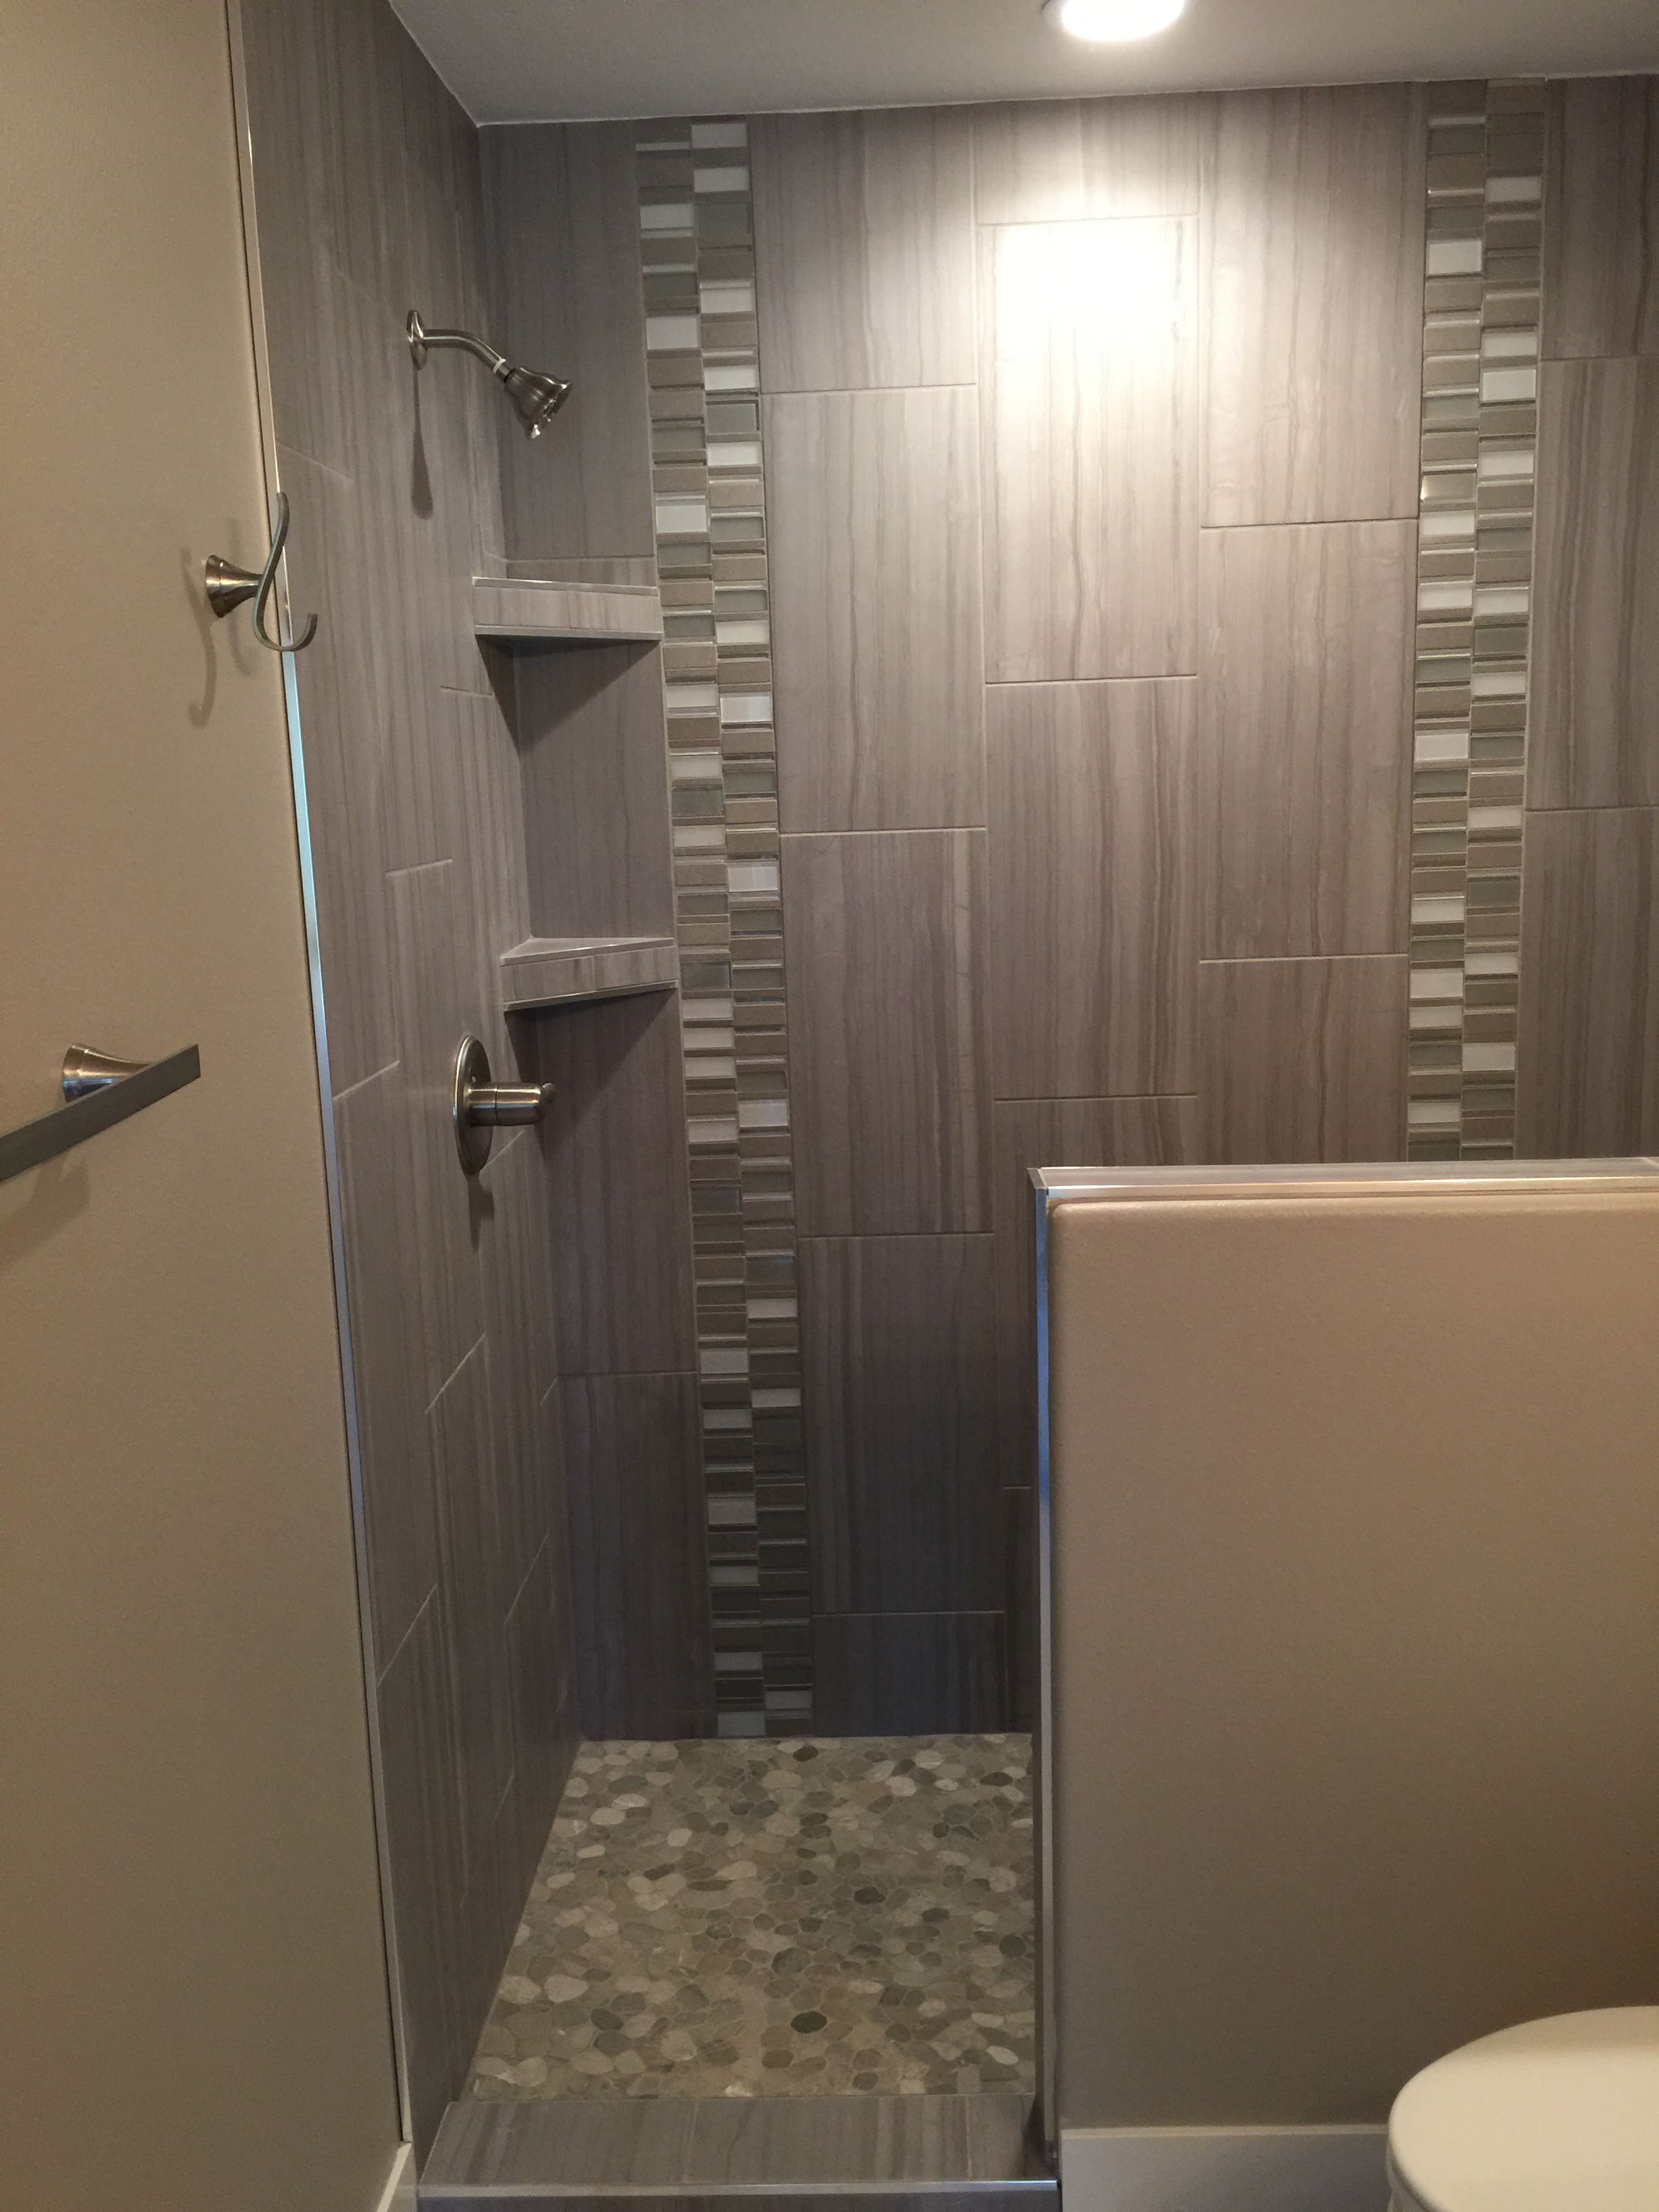 Beau Custom Tiled Shower In 12x24 Porcelain Tile Installed At A 1/3 Staggered  Vertically With A Glass And Stone Glass Mosaic Accent